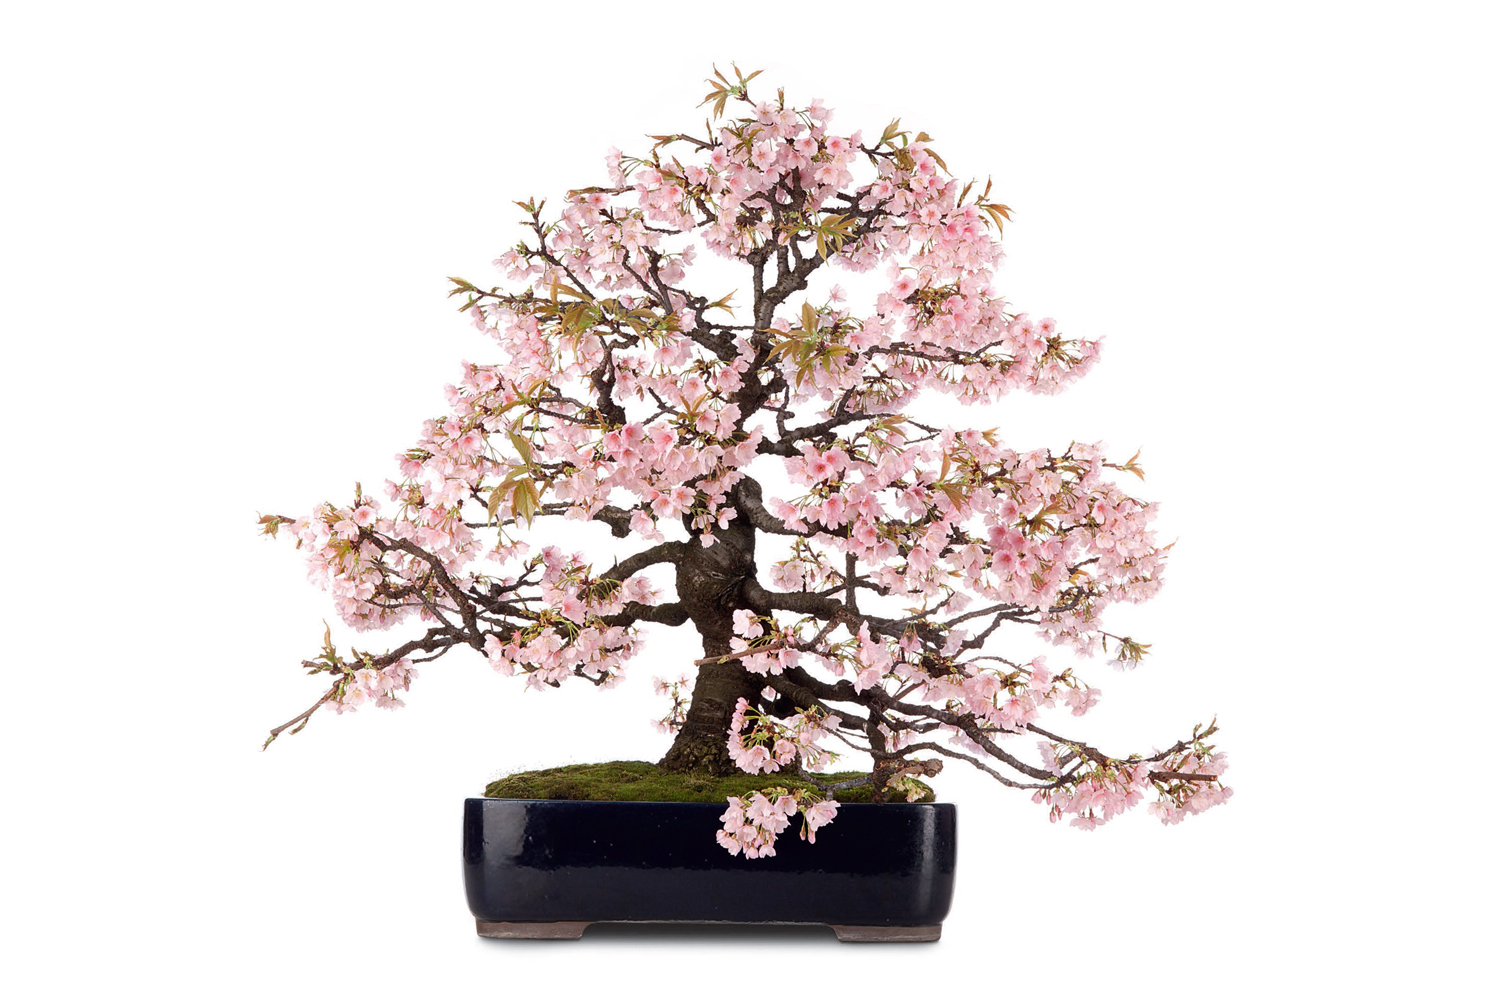 00_Bonsai_1-15ok.indd